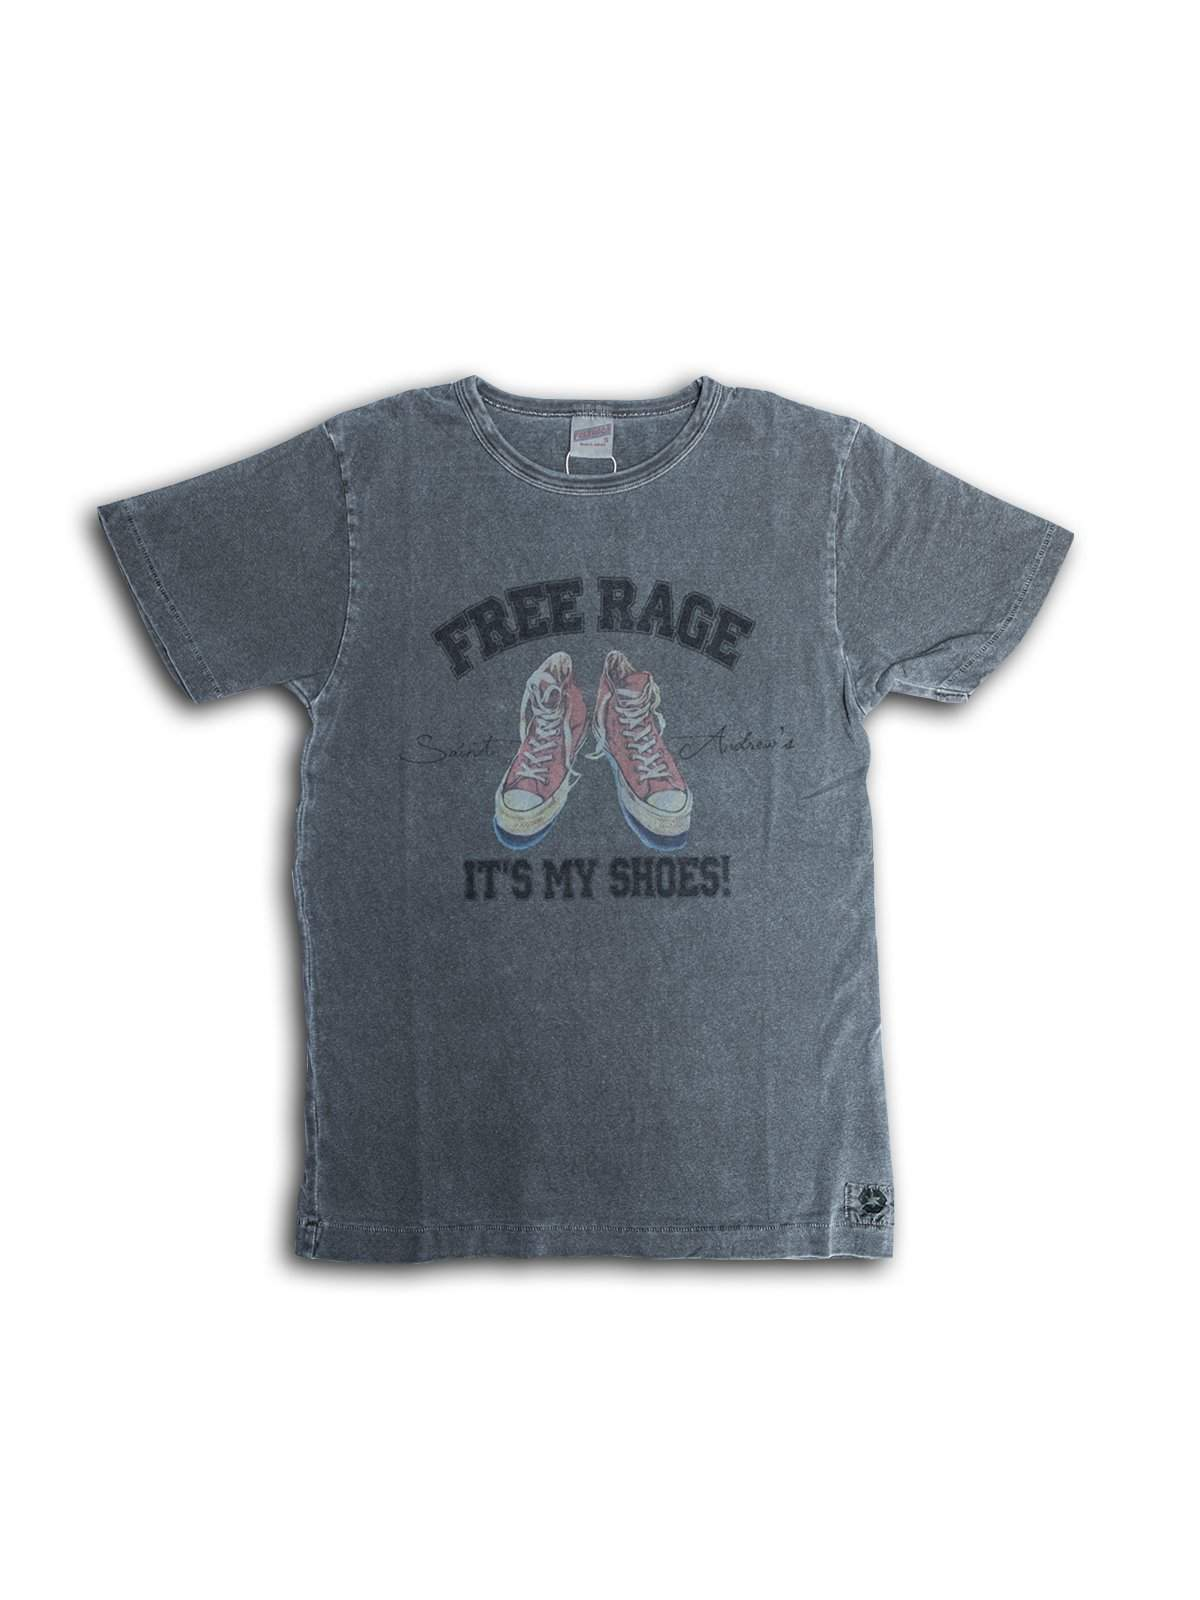 Free Rage Recycled Cotton Tee It's My Shoes Sumi - MORE by Morello Indonesia